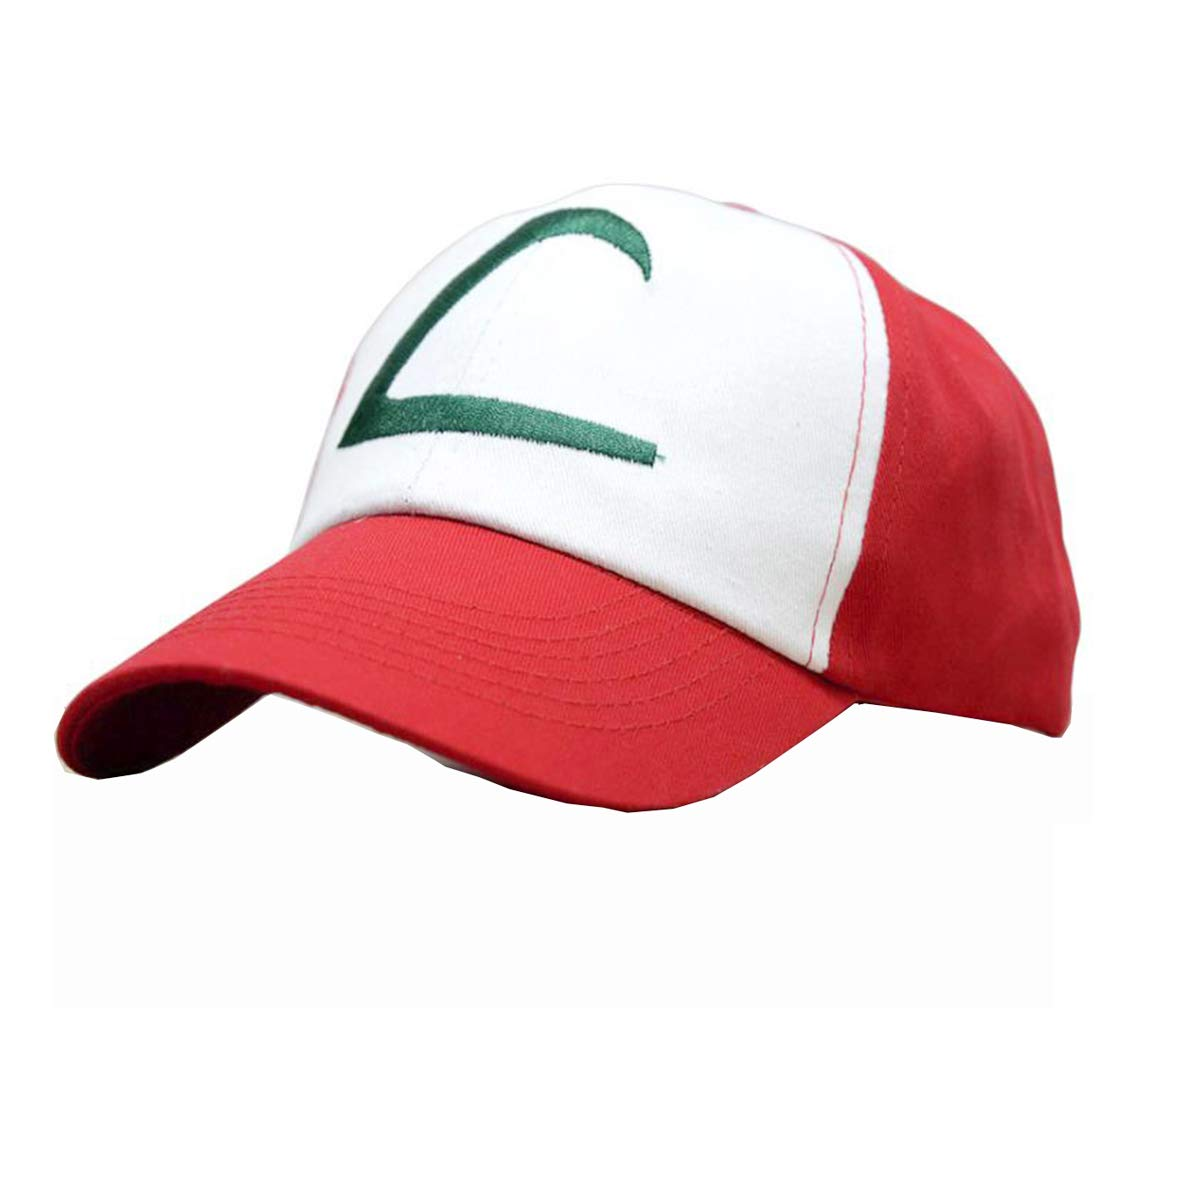 e8459517 Amazon.com: Pokemon Ash Ketchum Baseball Snapback Cap Trainer Hat for Adult  Embroidered, Adjustable, Red: Clothing